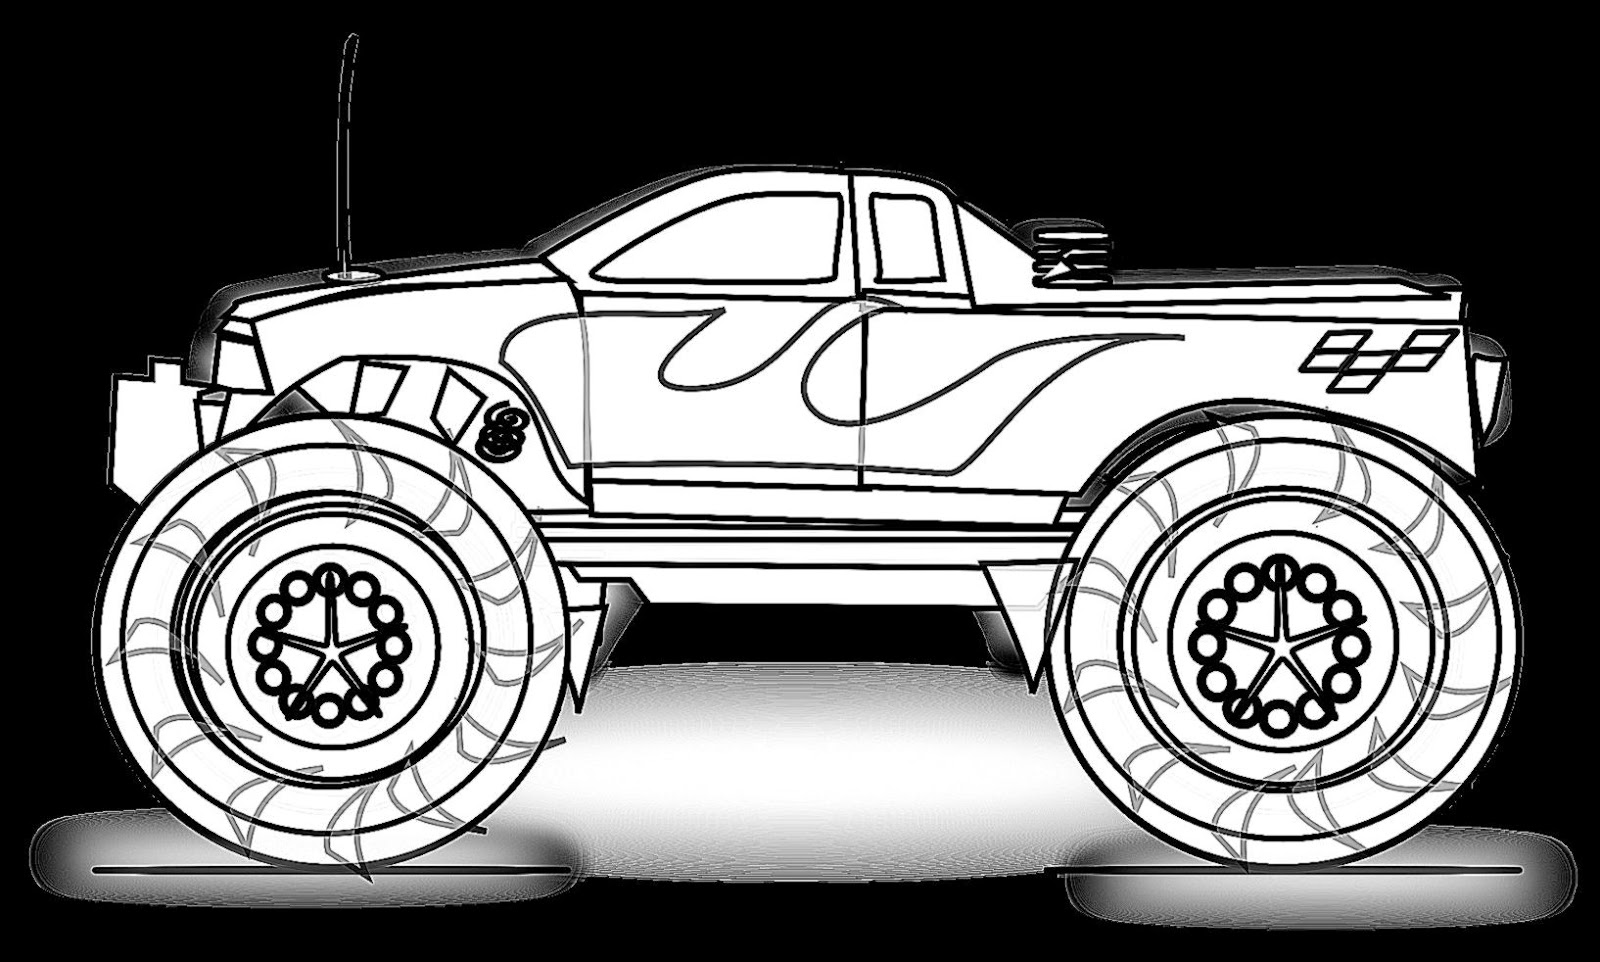 monster truck pictures to color get this jam zombie monster truck coloring page 09271 pictures to color monster truck